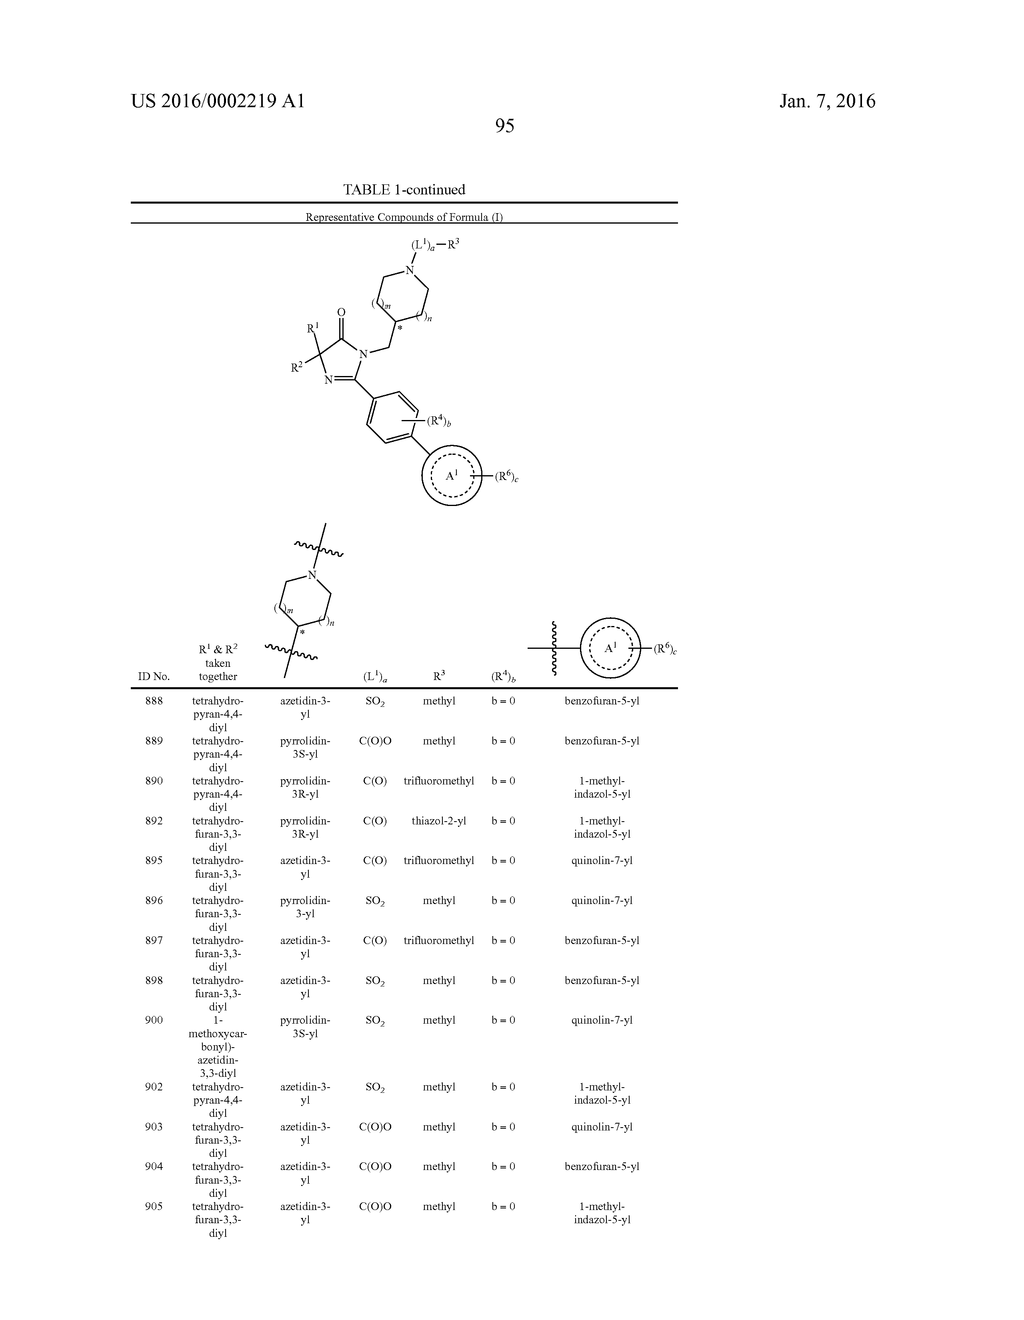 IMIDAZOLIN-5-ONE DERIVATIVE USEFUL AS FASN INHIBITORS FOR THE TREATMENT OF     CANCER - diagram, schematic, and image 96